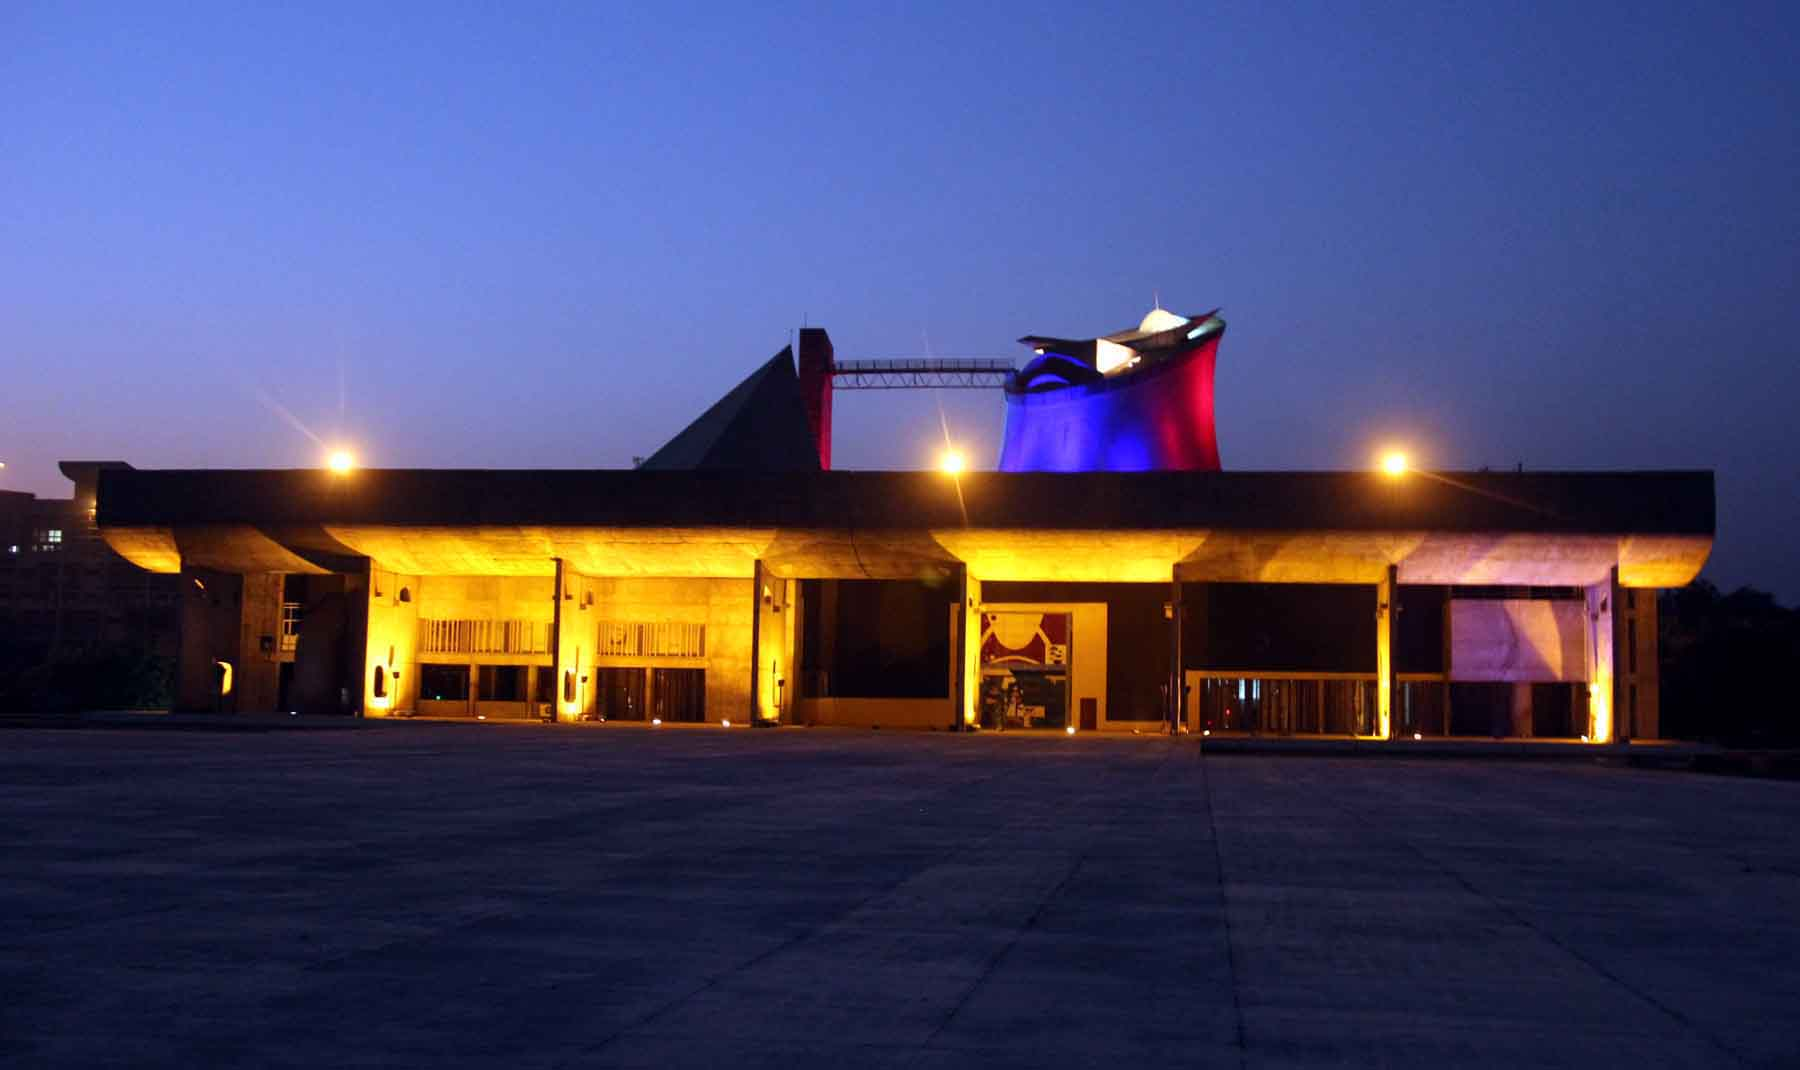 Capitol Complex lighting on the eve of International Symposium �Celebrating Le Corbusier�s Chandigarh� at Capitol Complex, Chandigarh on Thursday, October 08, 2015.